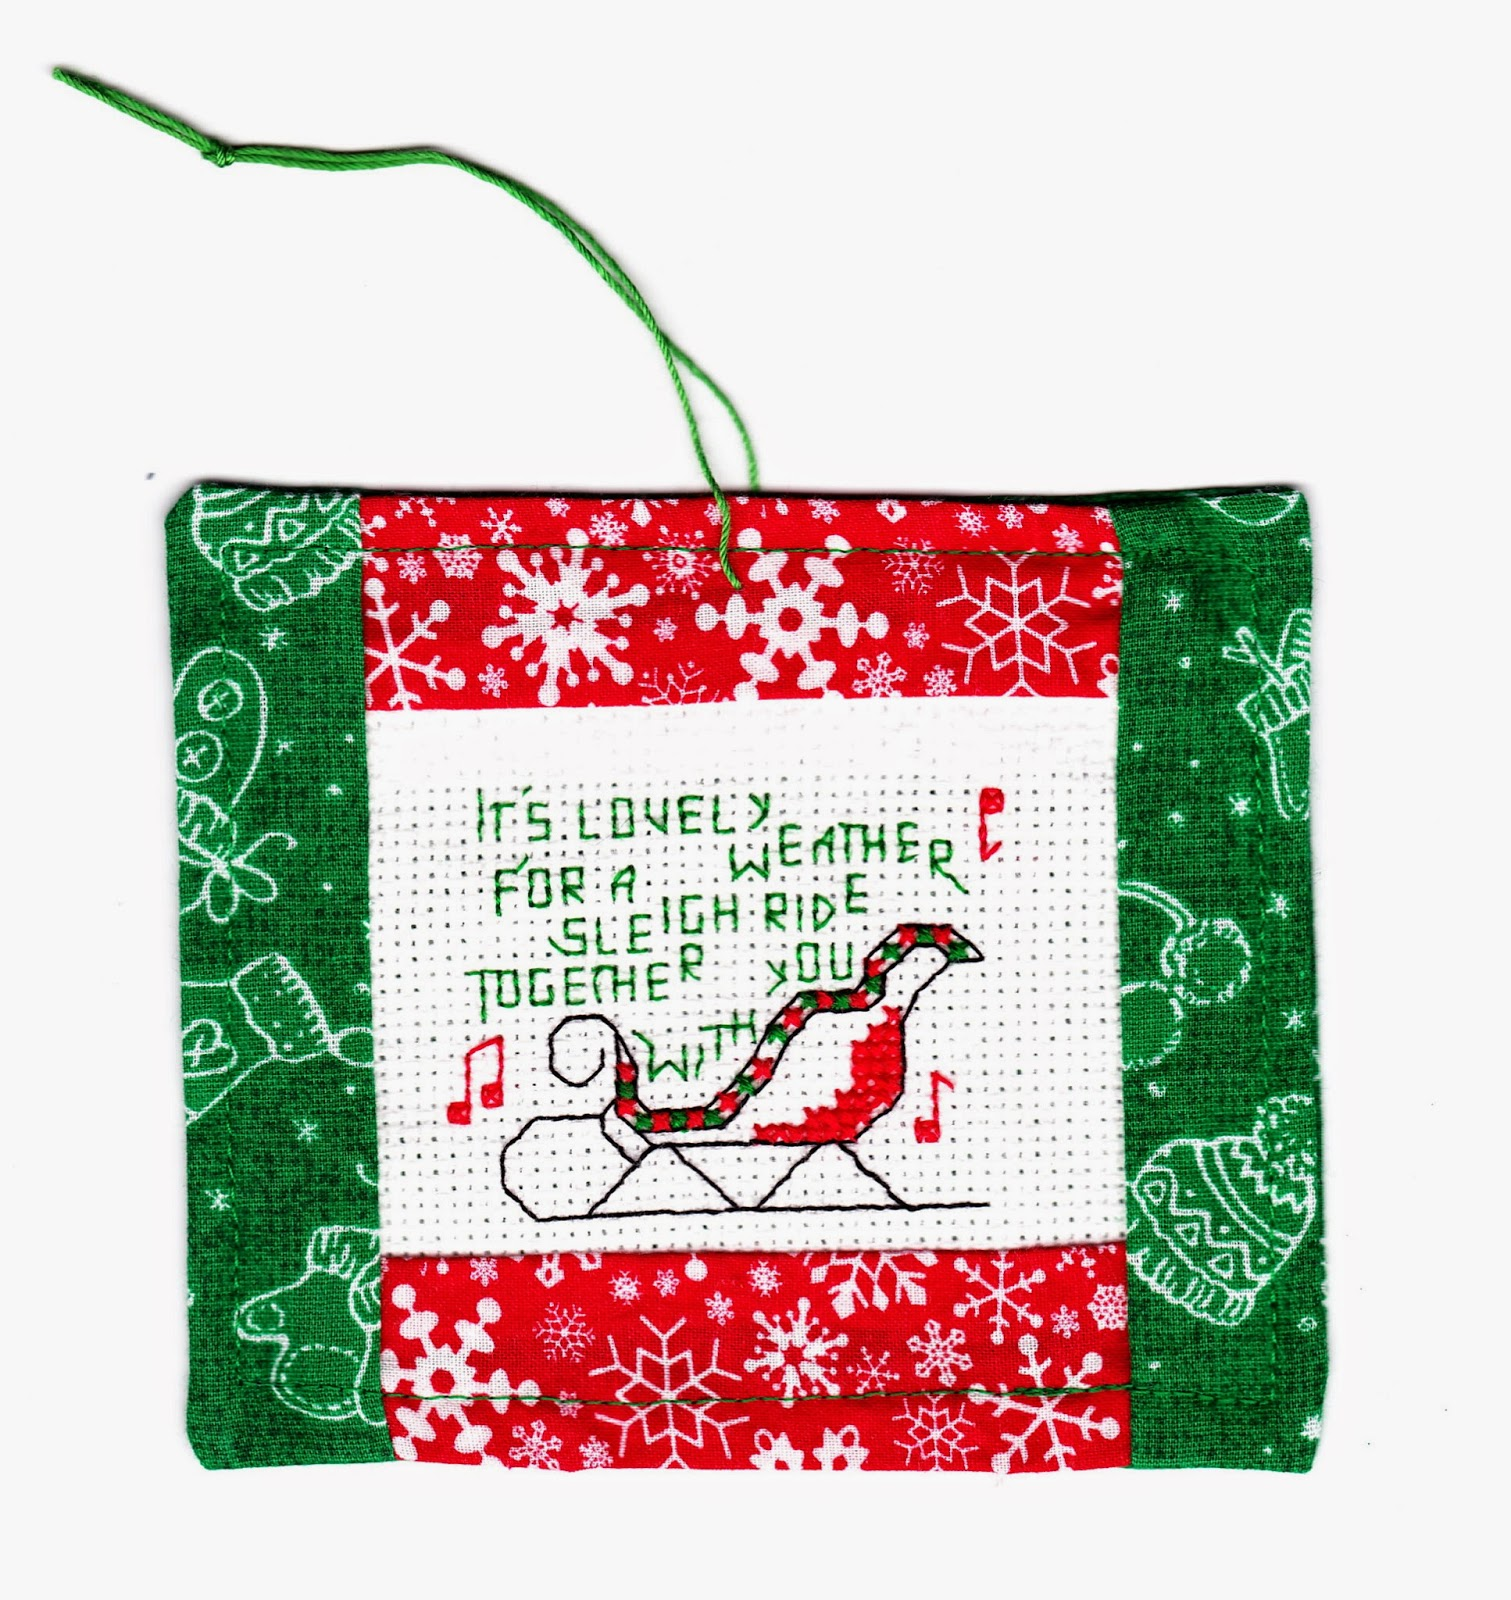 Mrs.T's Christmas Kitchen: How to finish a cross-stitch ...